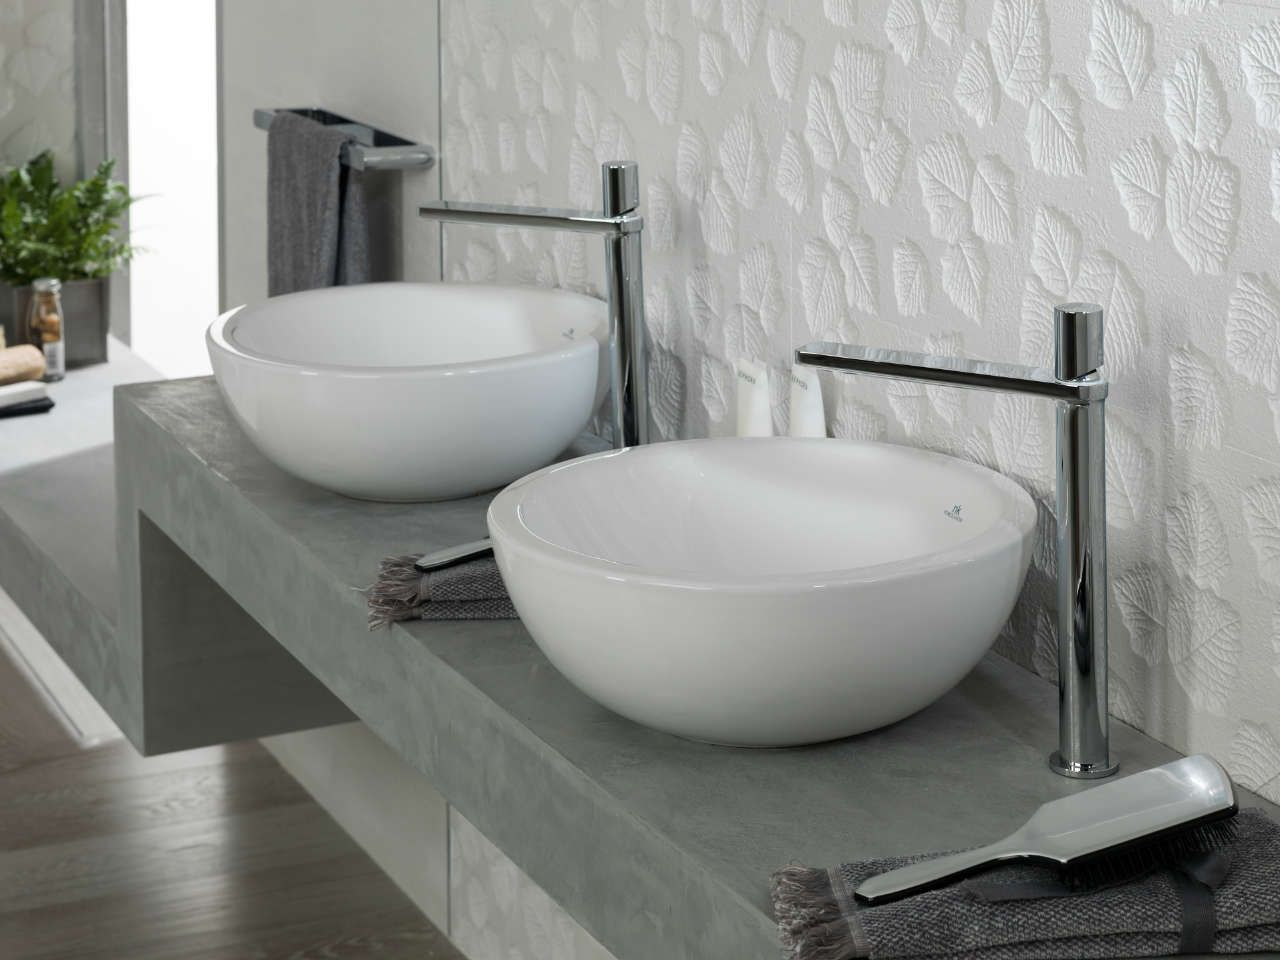 Porcelanosa Sinks Lavabo Forma Rondo  A&k.cata  Pinterest  Sinks And Ranges